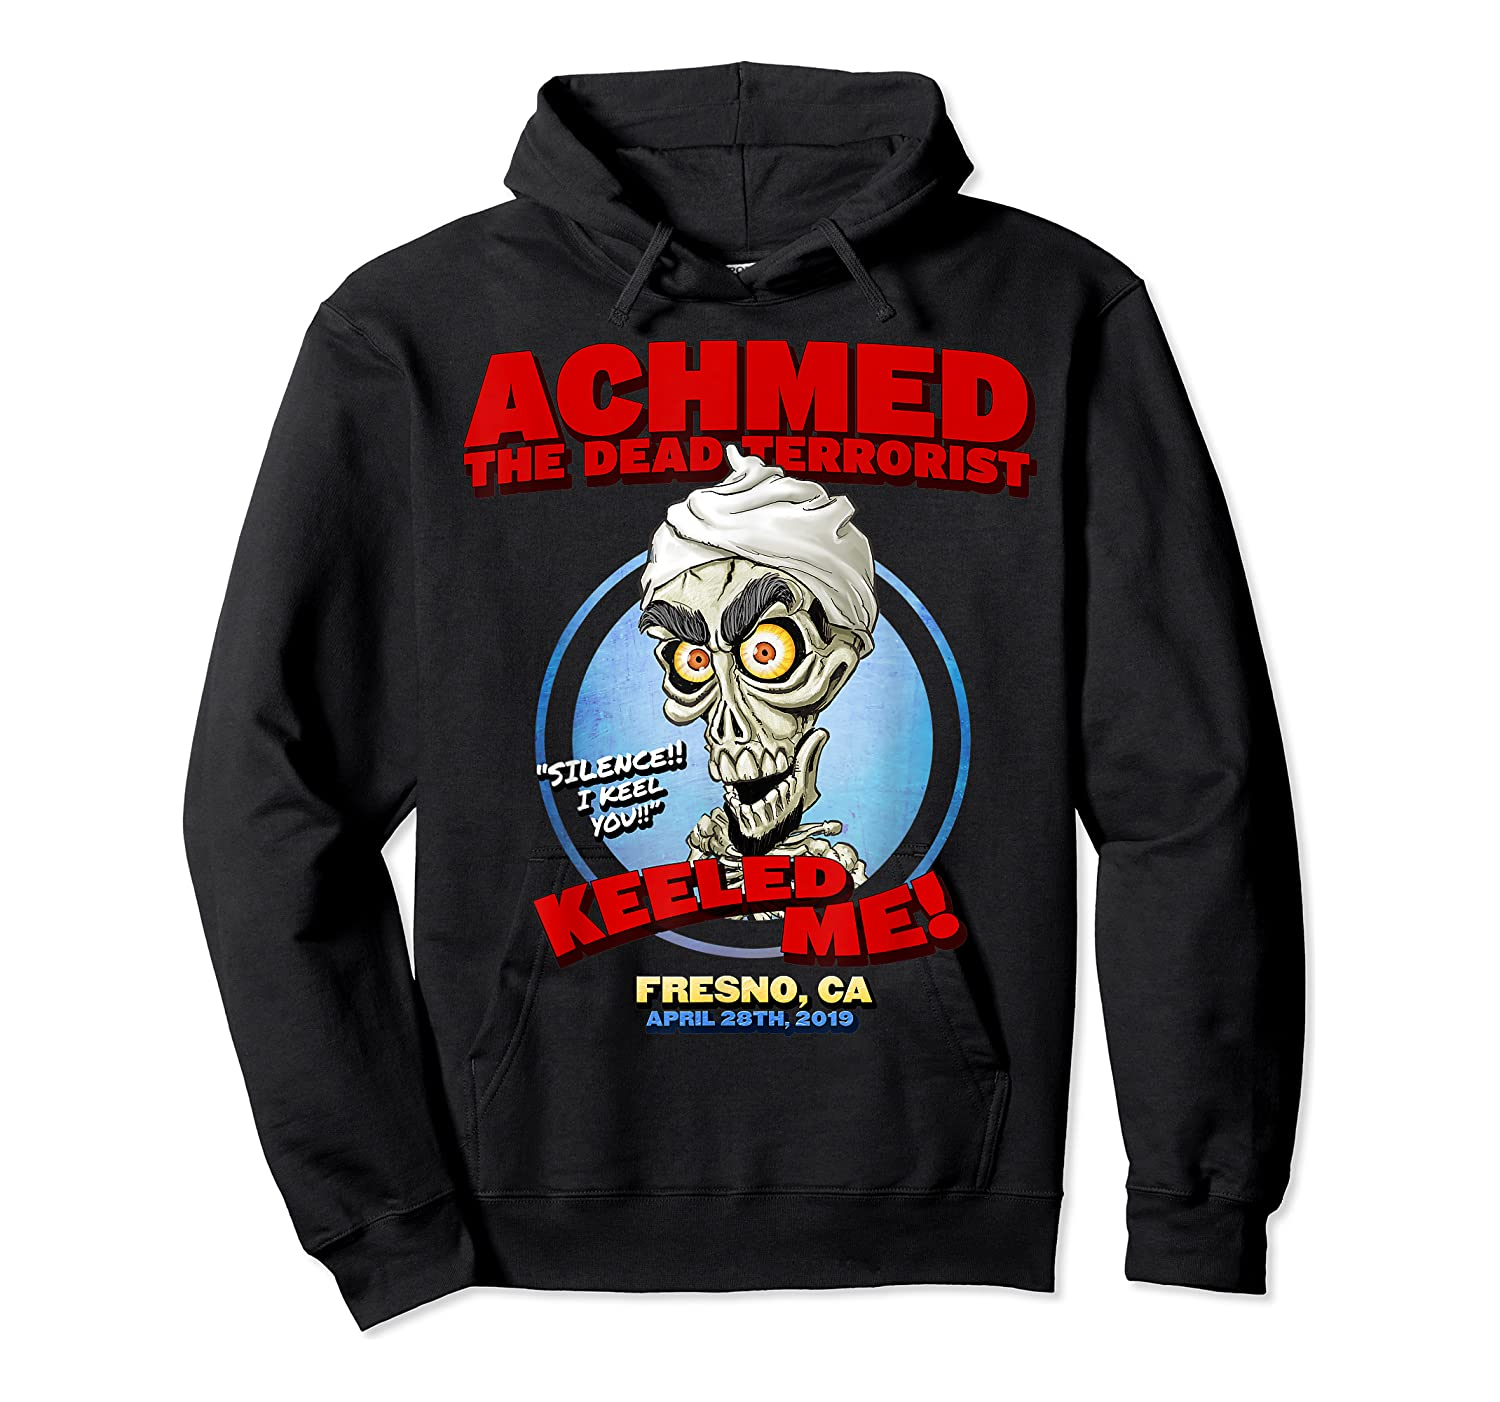 Achmed The Dead Terrorist Fresno, Ca Shirts Unisex Pullover Hoodie